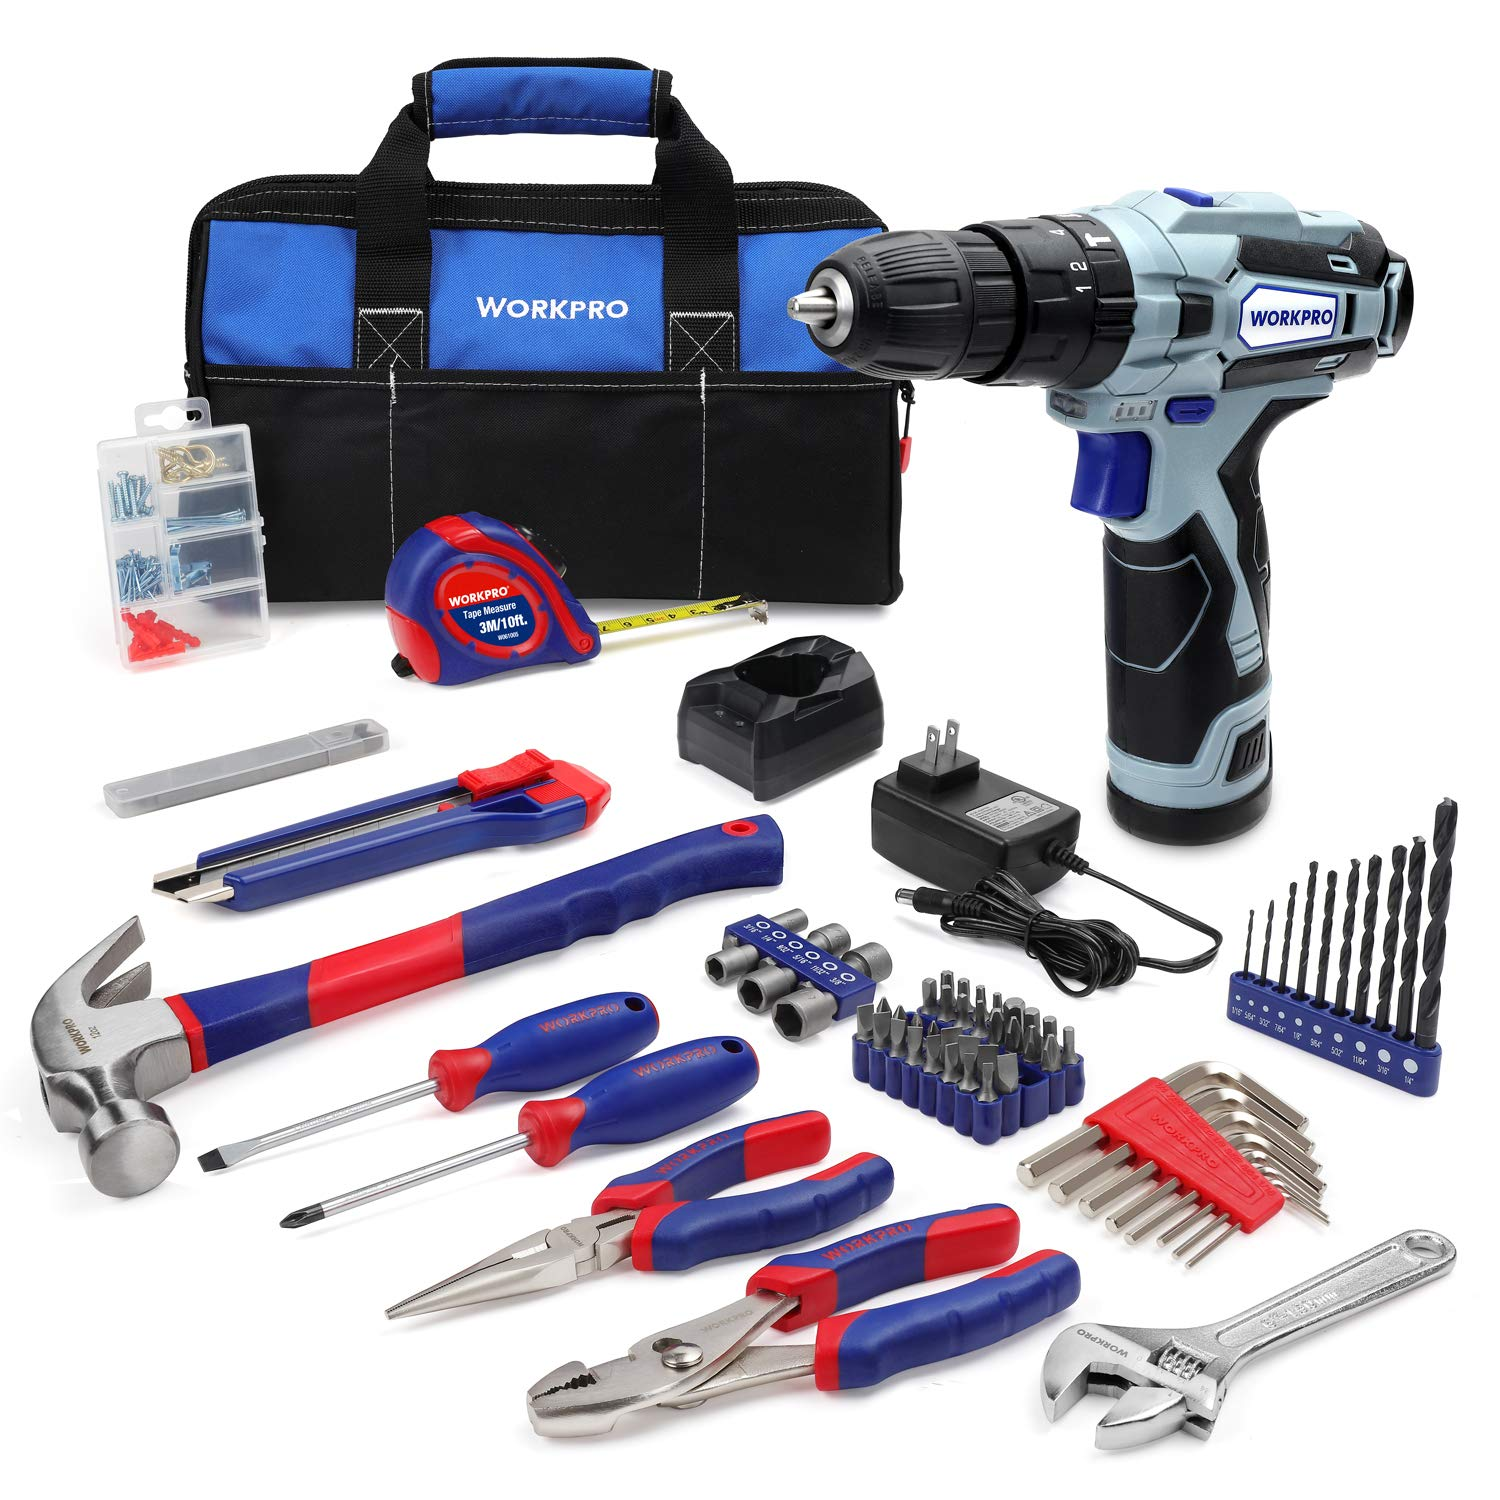 WORKPRO Home Tool Kit and 12V Cordless Drill, 177 Pieces Combo Kit with 14-inch Tool Bag